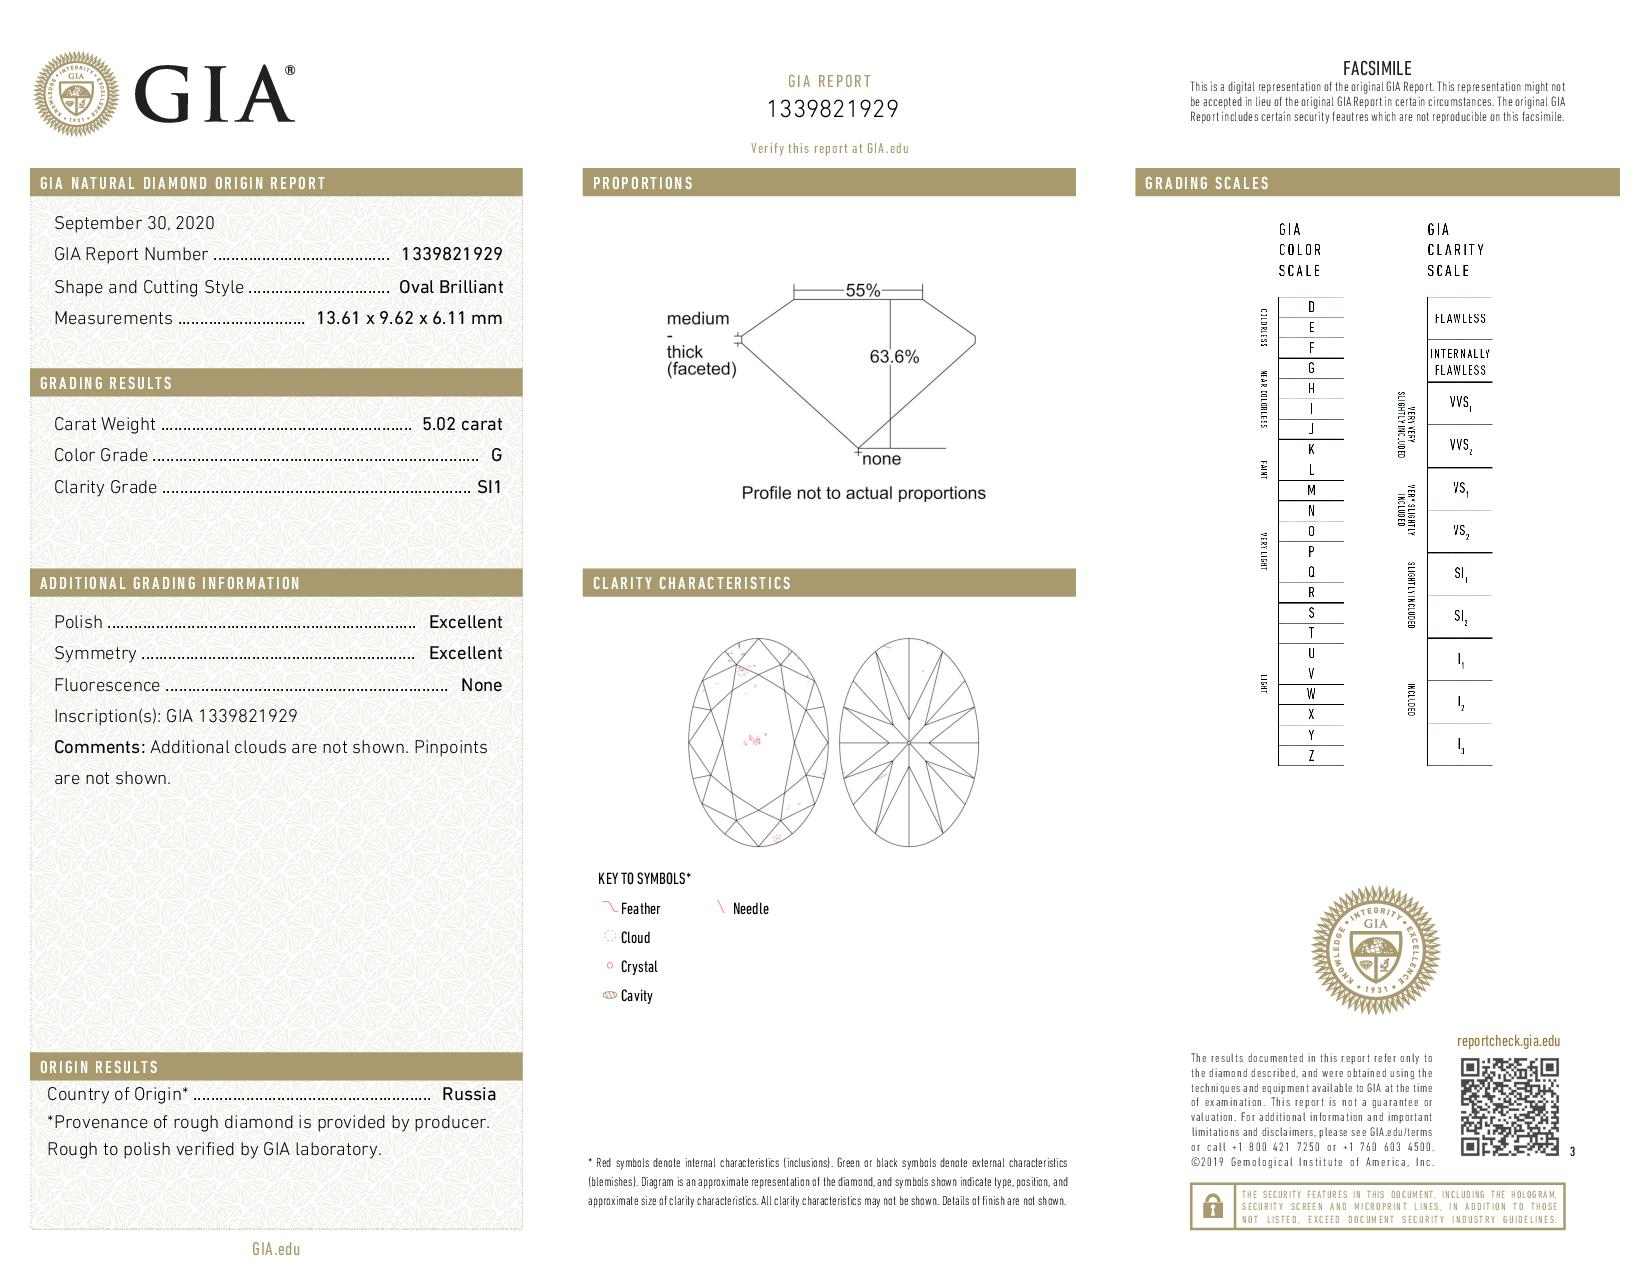 This is a 5.02 carat oval shape, G color, SI1 clarity natural diamond accompanied by a GIA grading report.